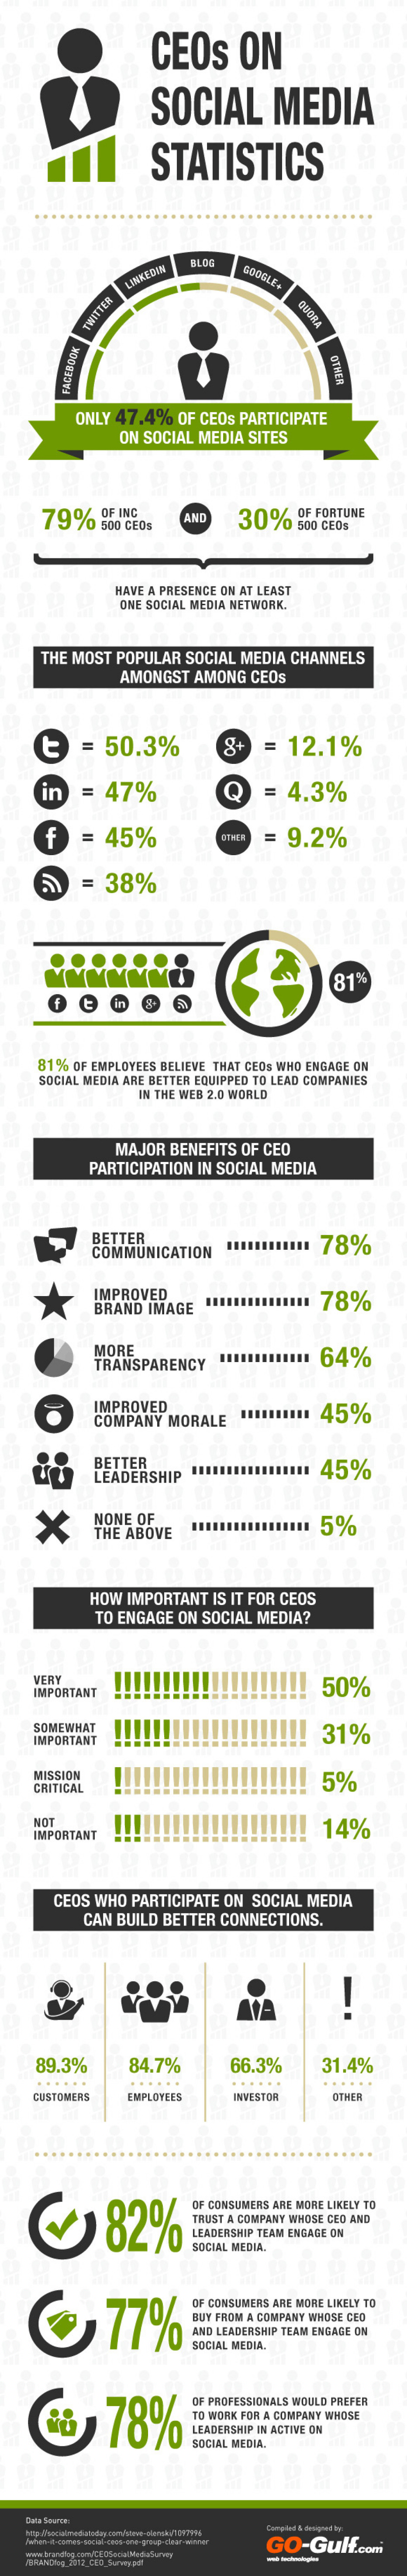 CEOs Using Social Media: Statistics, Facts And Figures